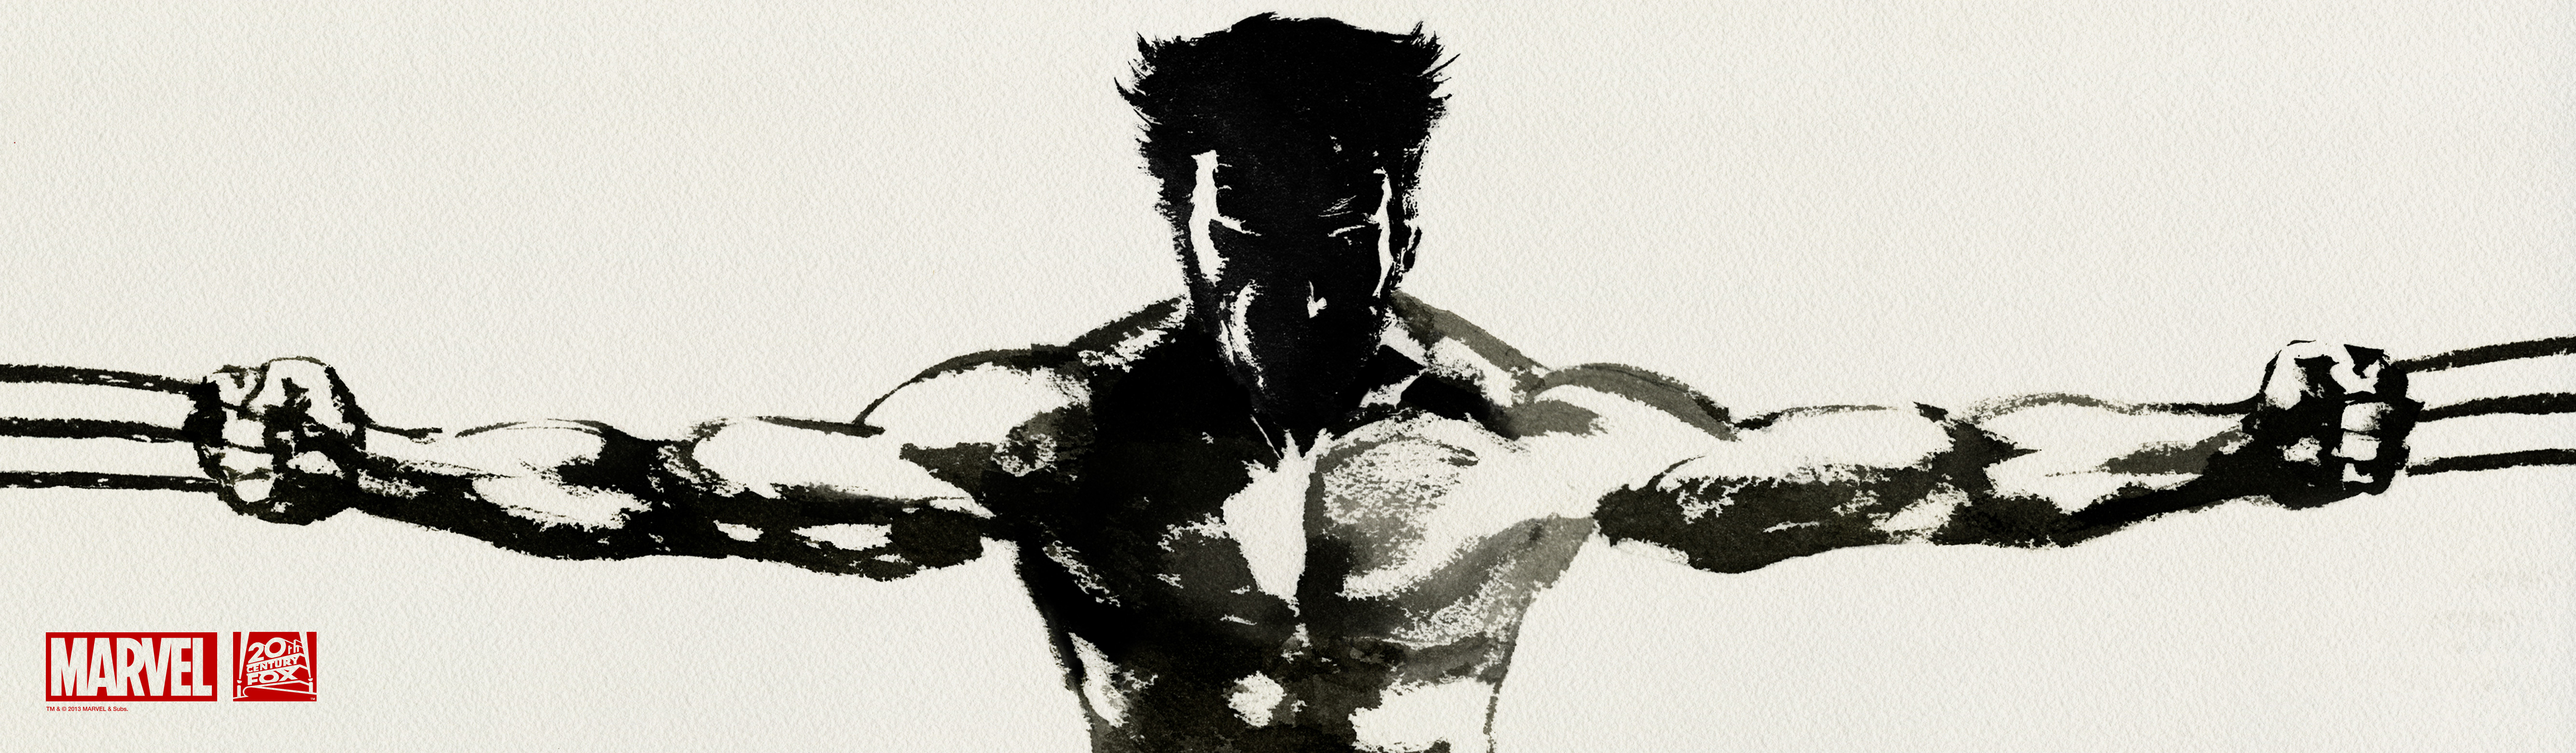 TheWolverine_poster2